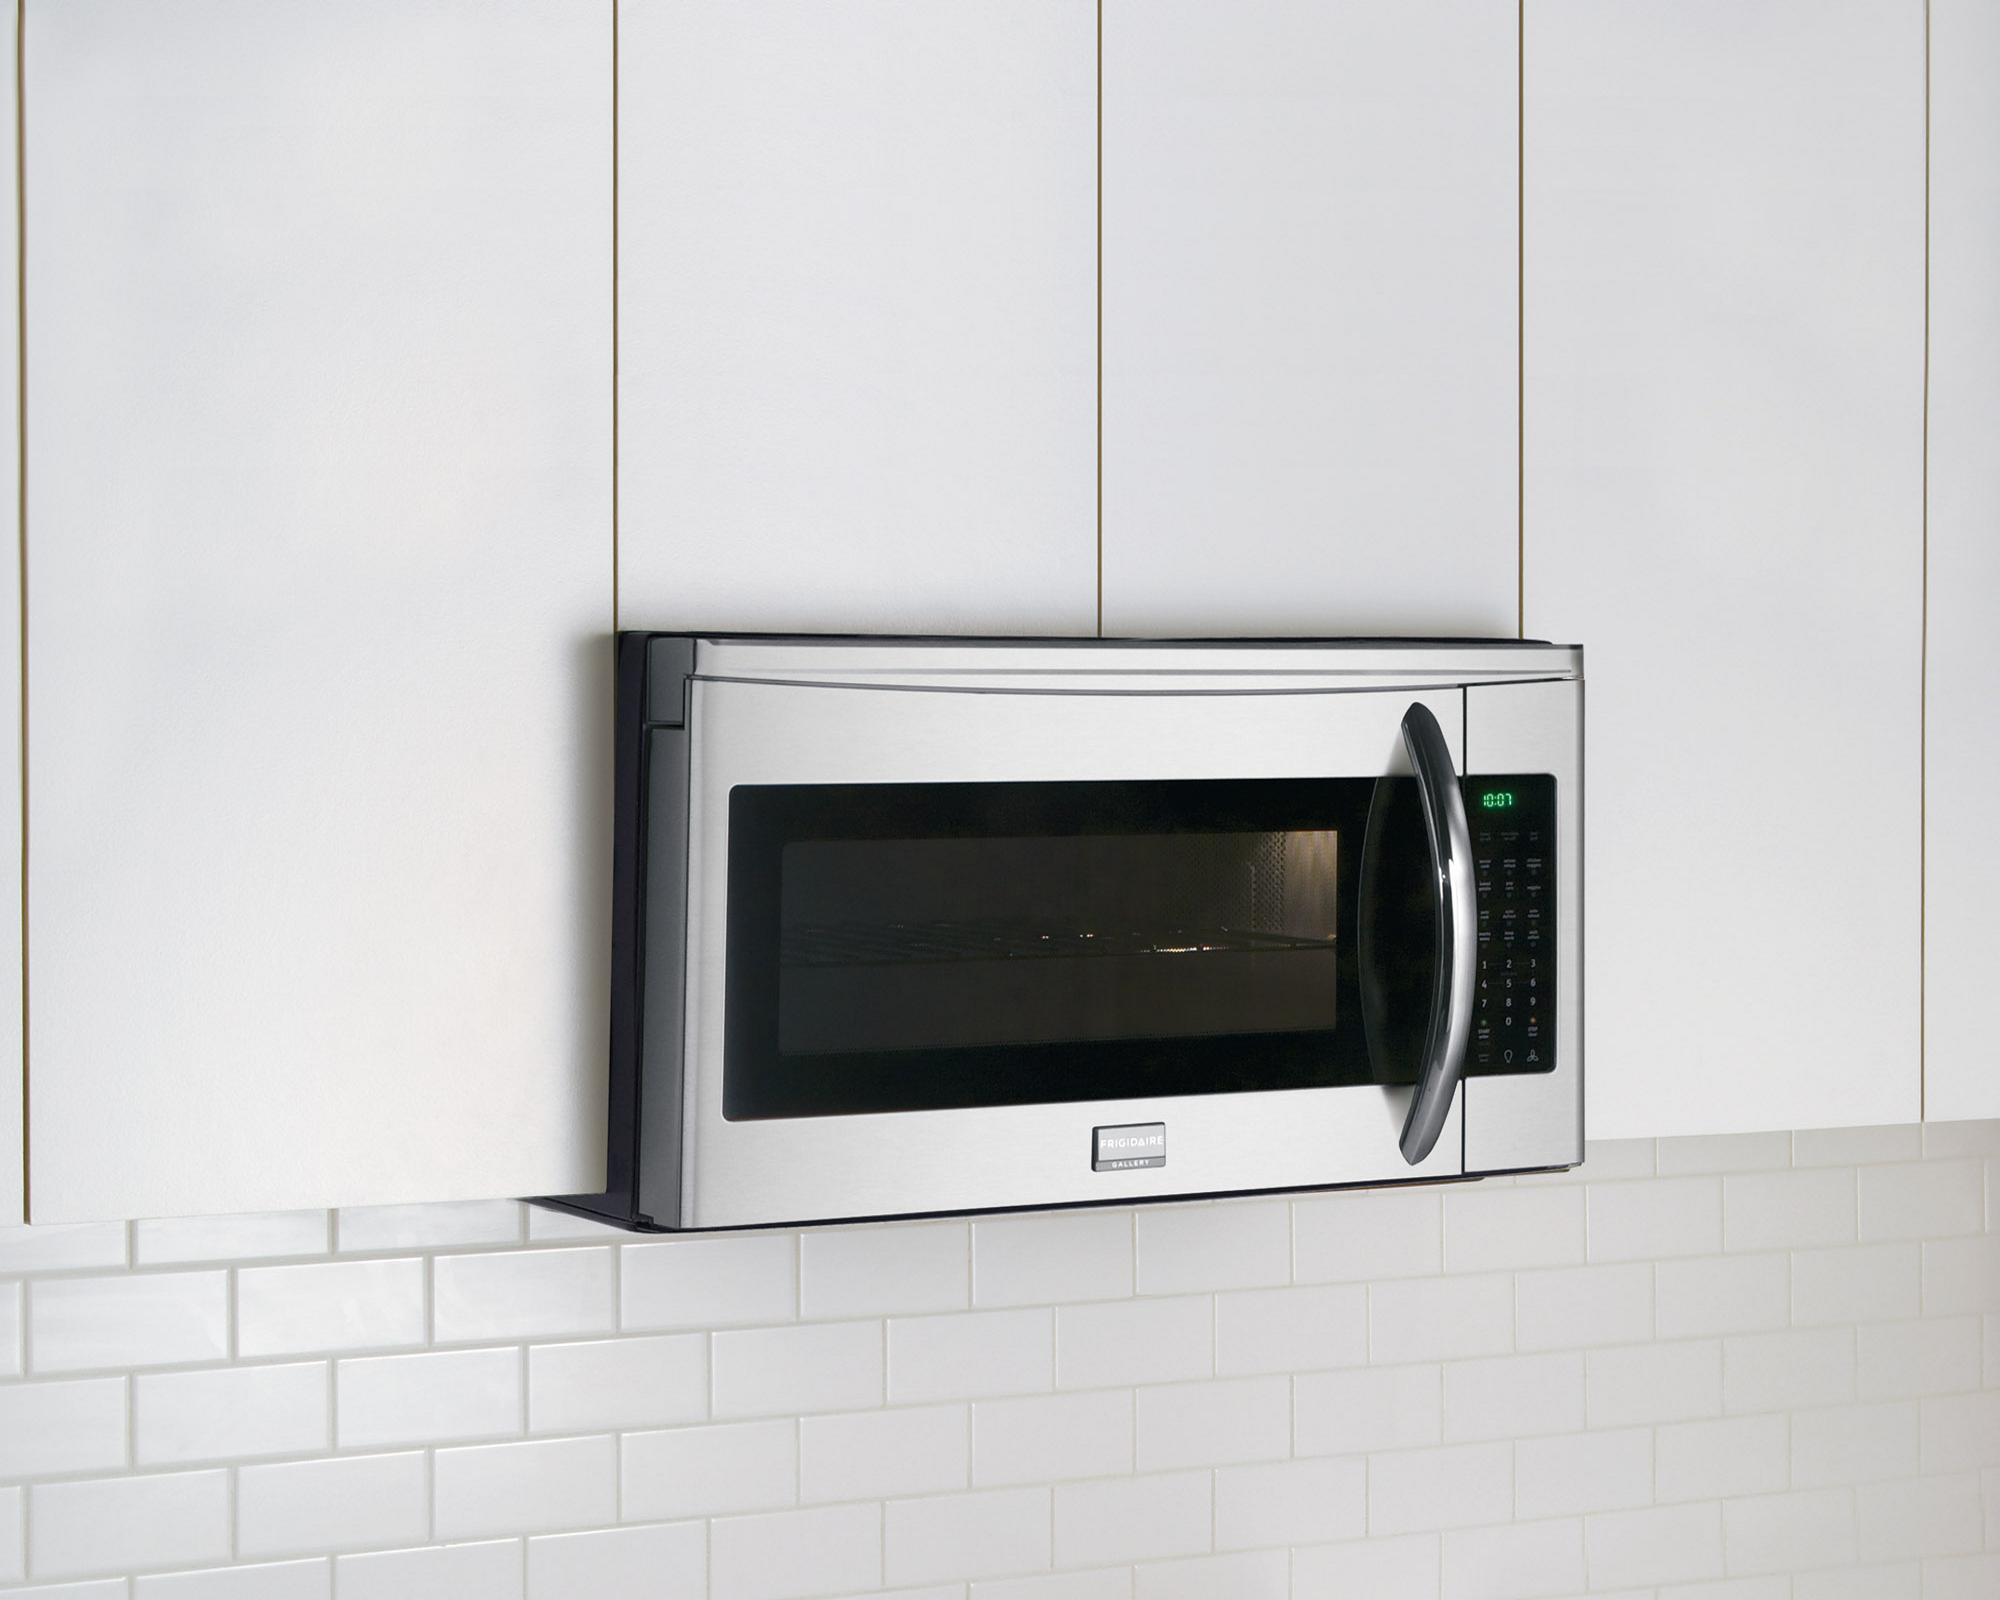 Frigidaire Gallery Gallery 2.0 cu. ft. Over-the-Range Microwave - Stainless Steel